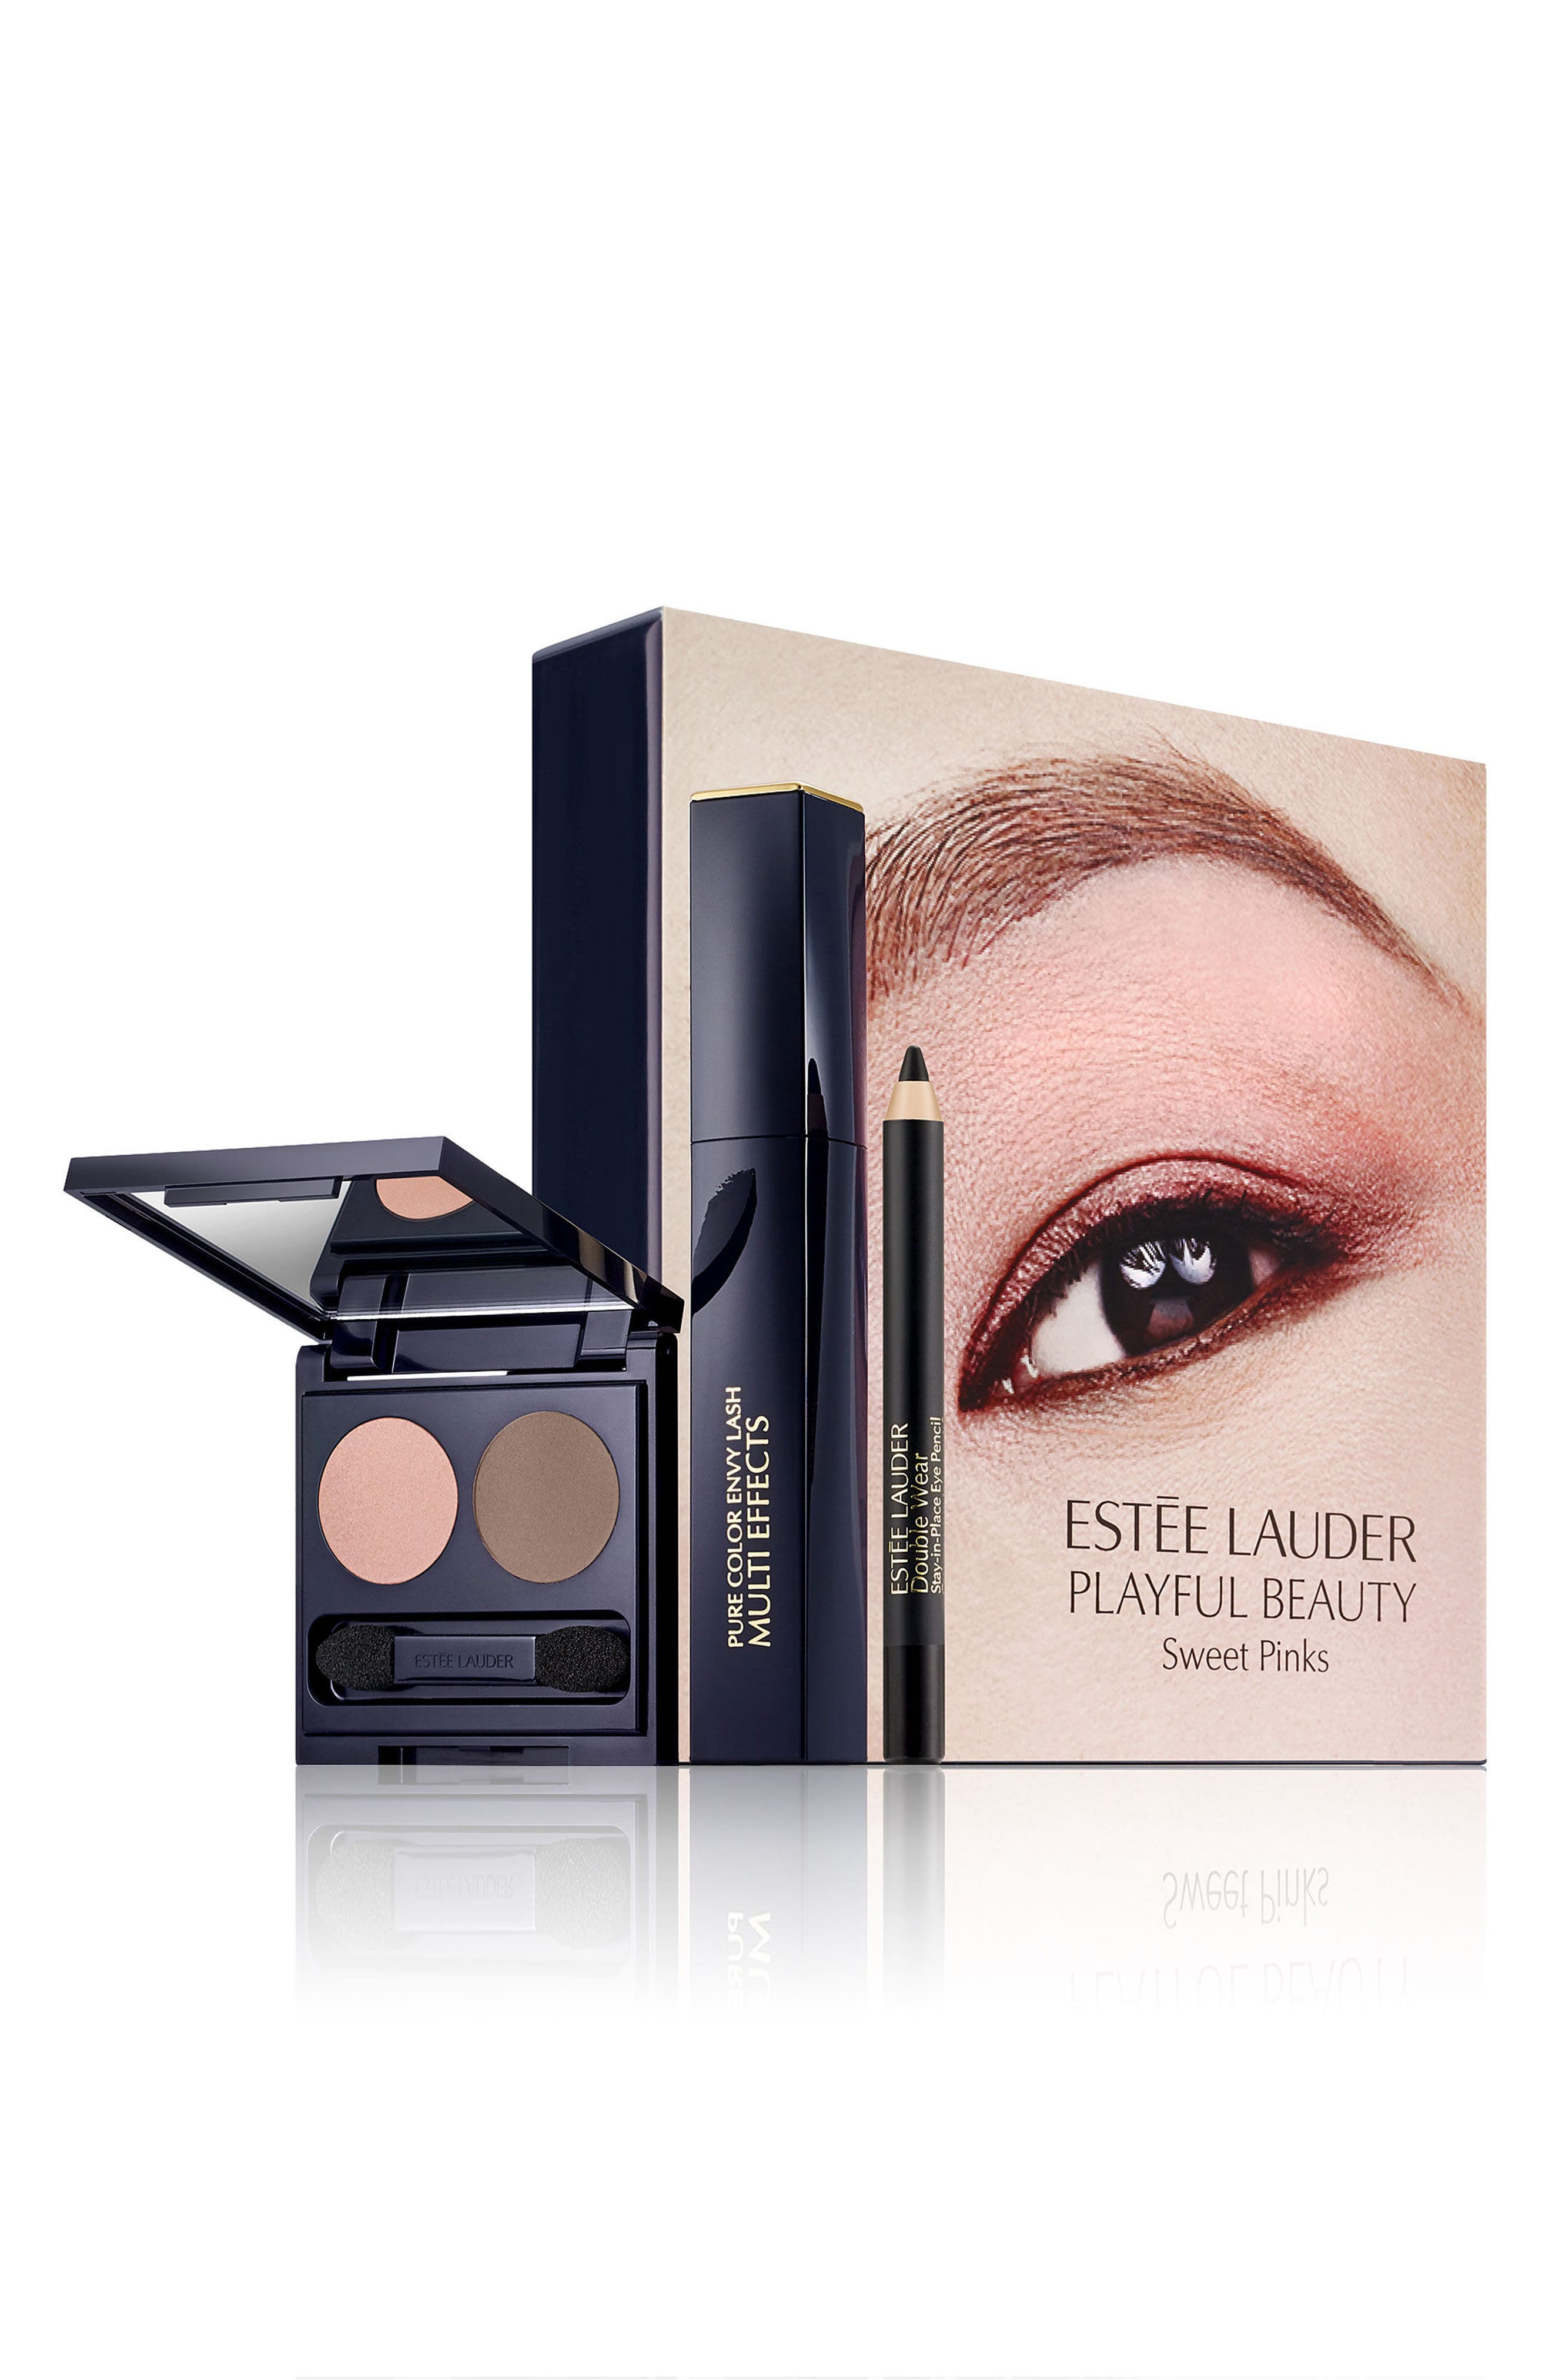 Estée Lauder Sweet Pink Eyeshadow, Mascara & Liner Set ($52 Value)